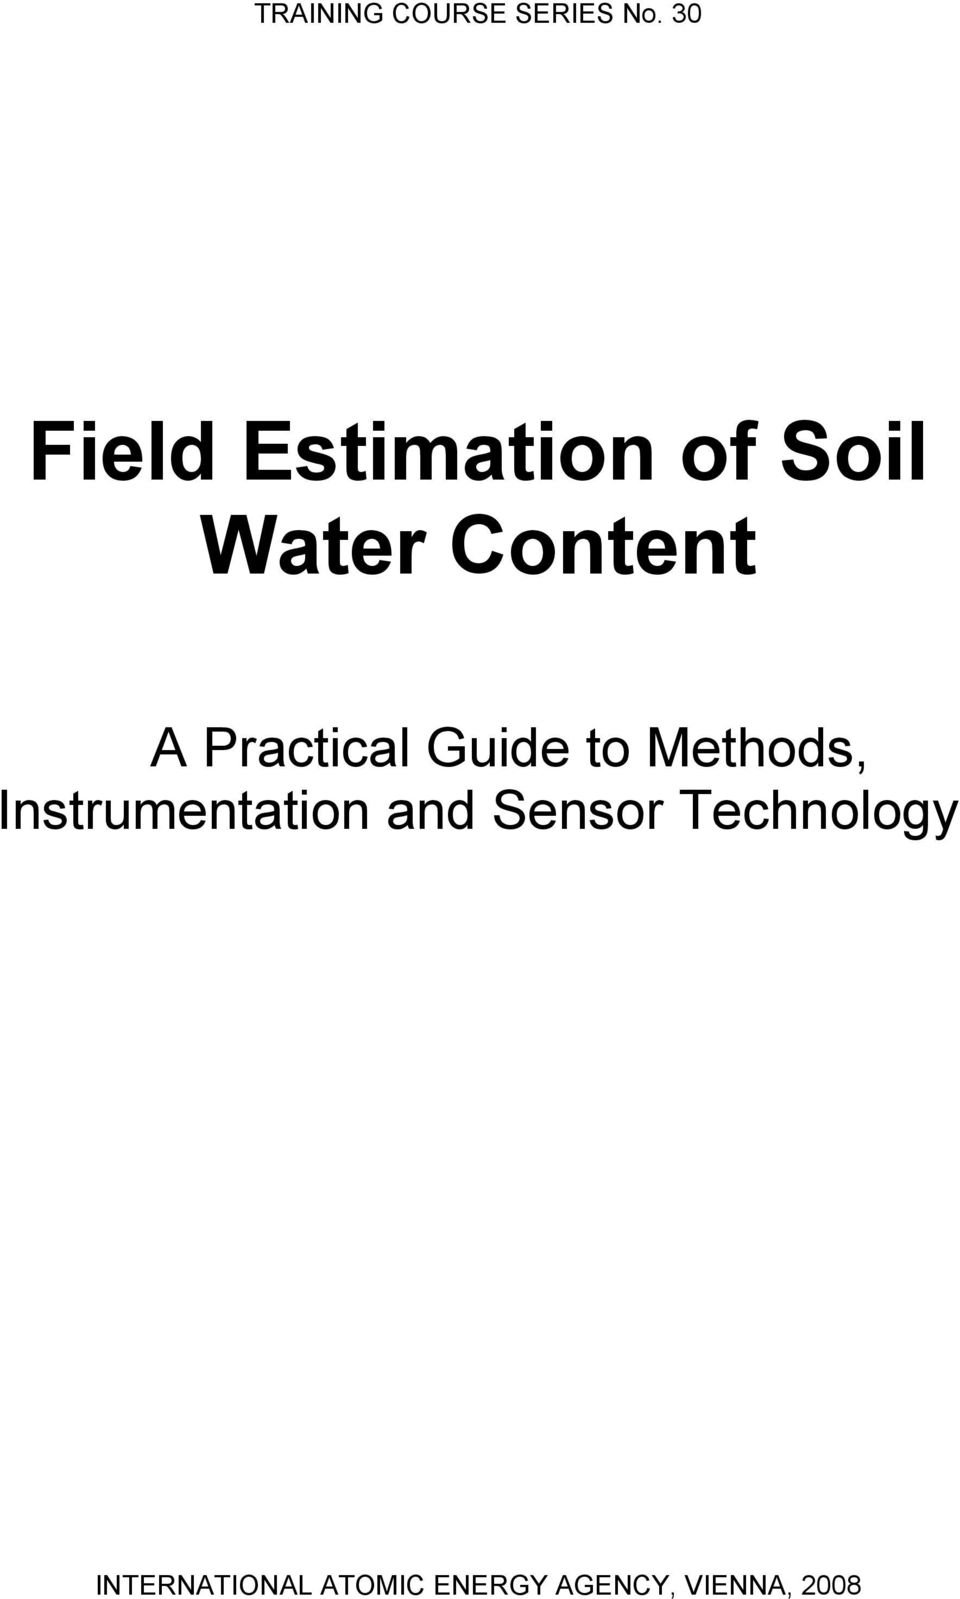 Practical Guide to Methods, Instrumentation